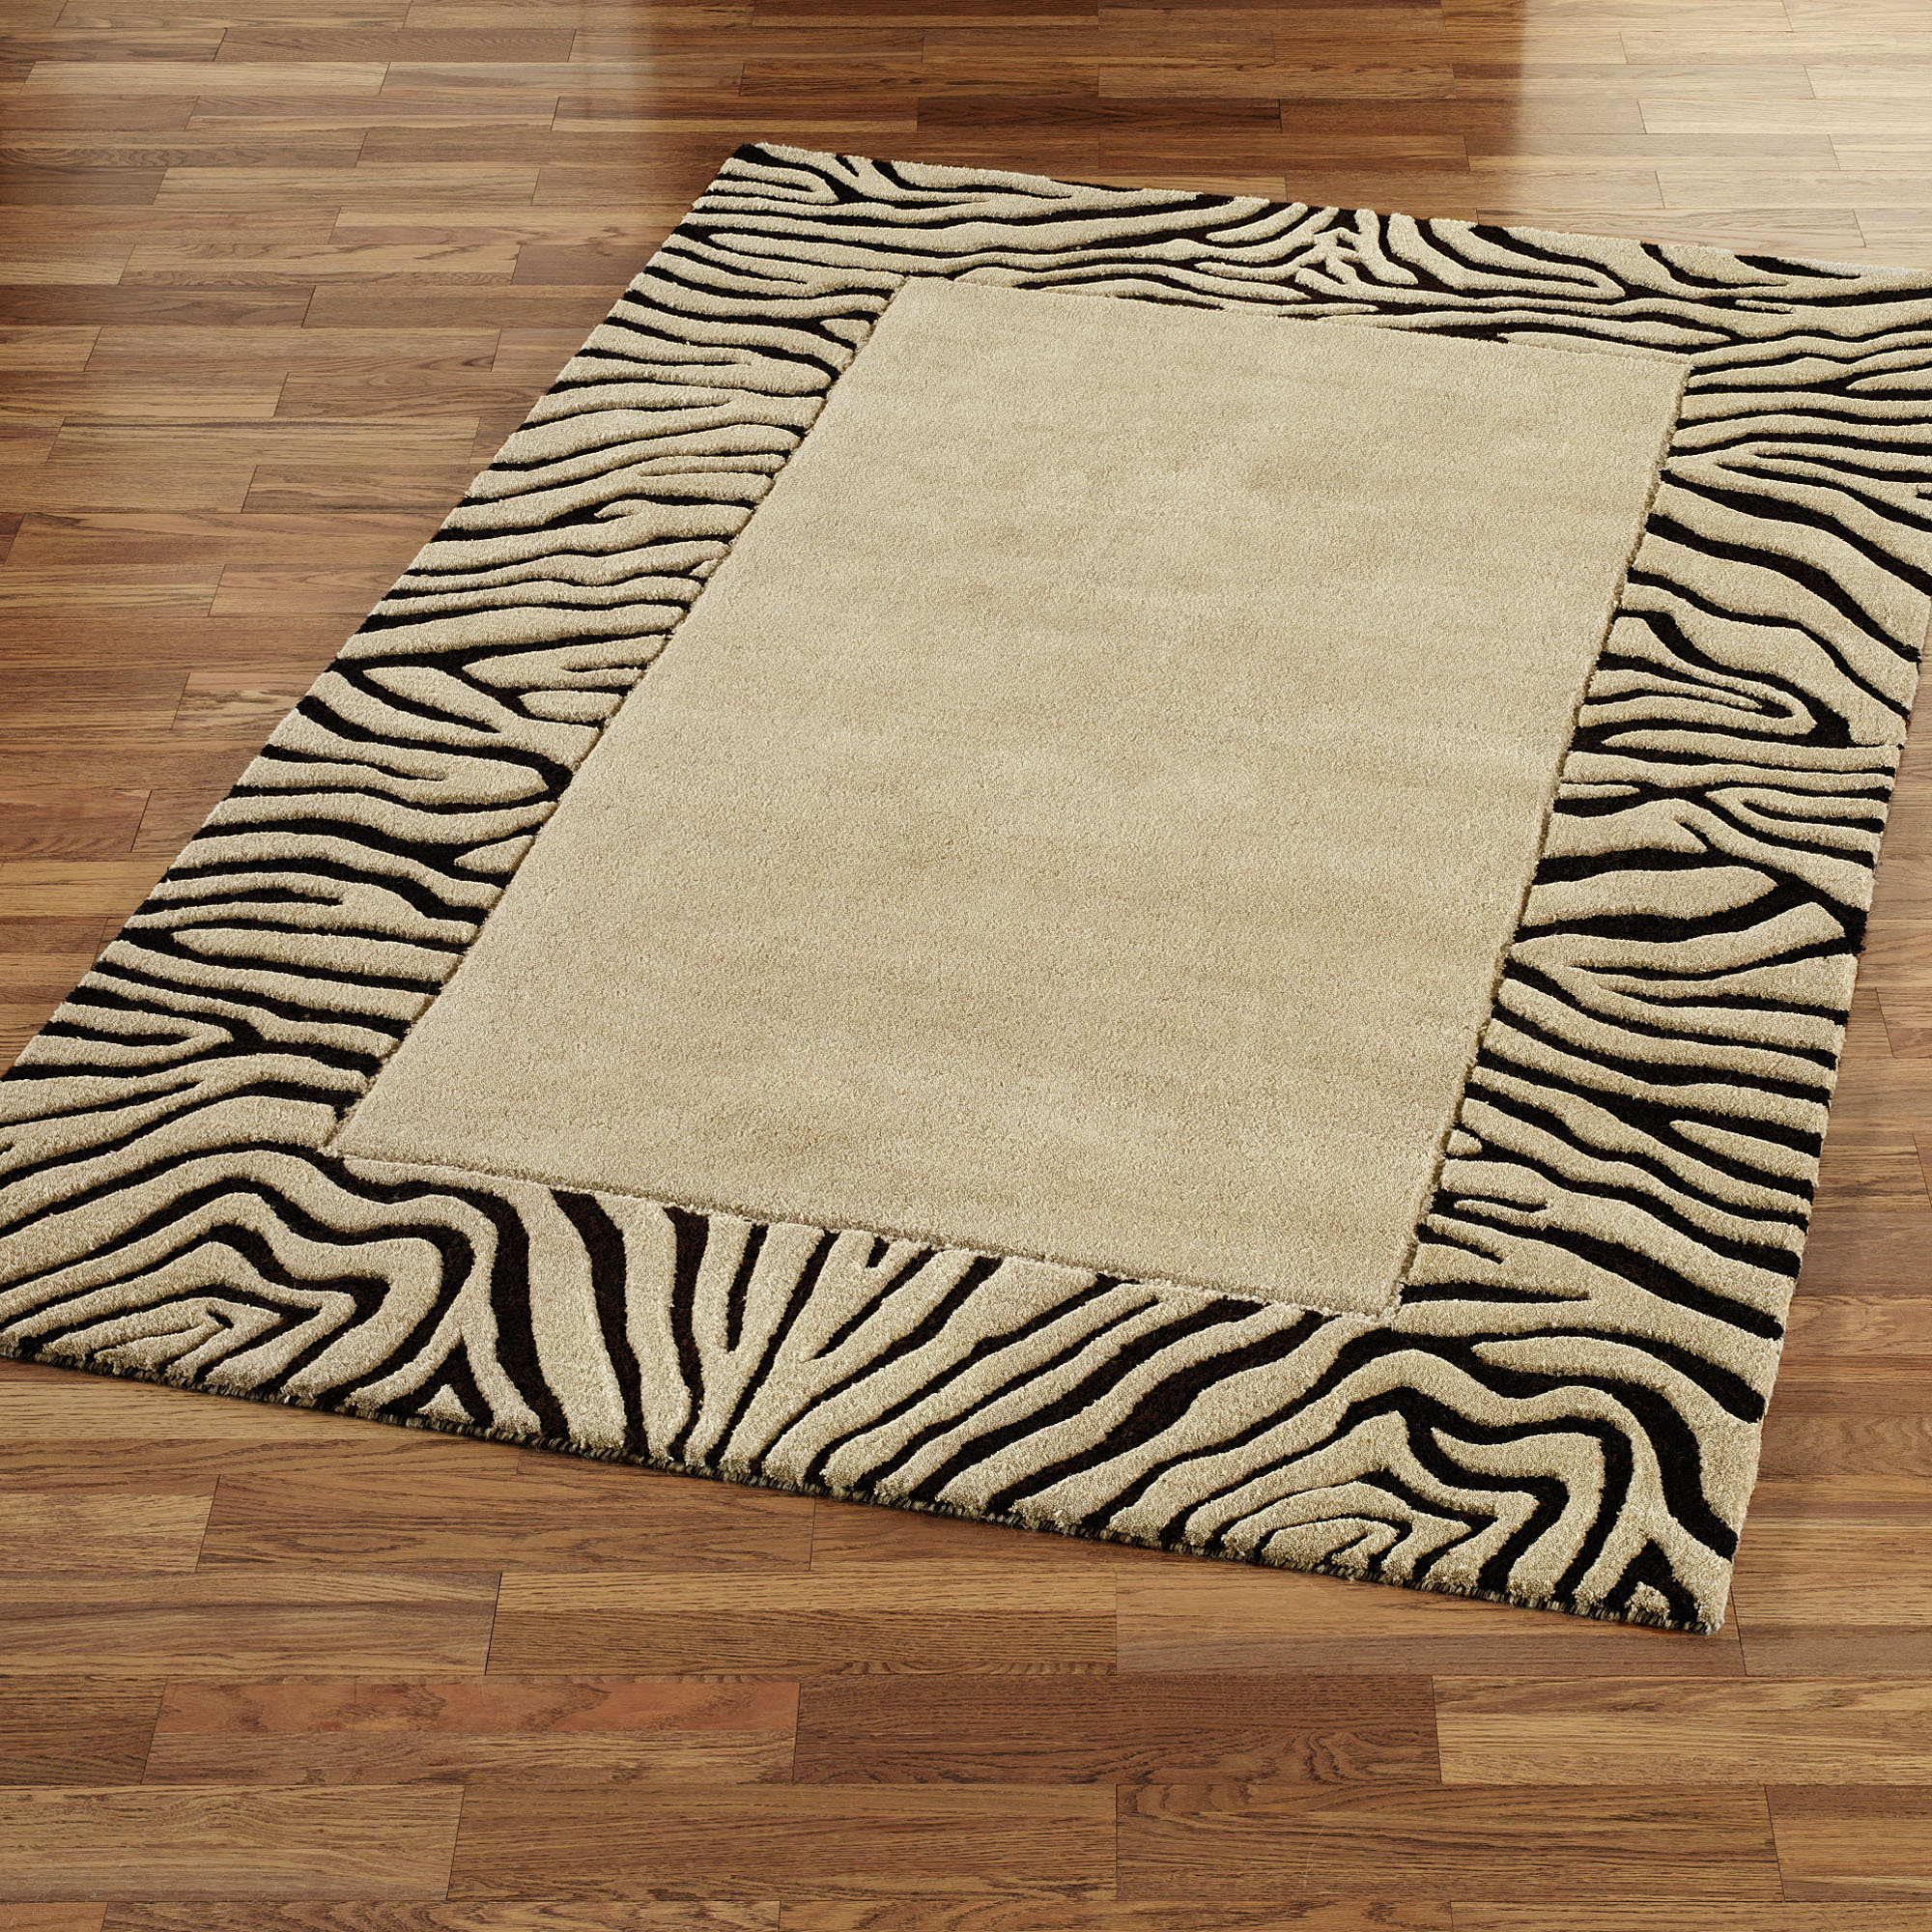 Brilliant zebra rug for floorings and rugs ideas with zebra skin rug